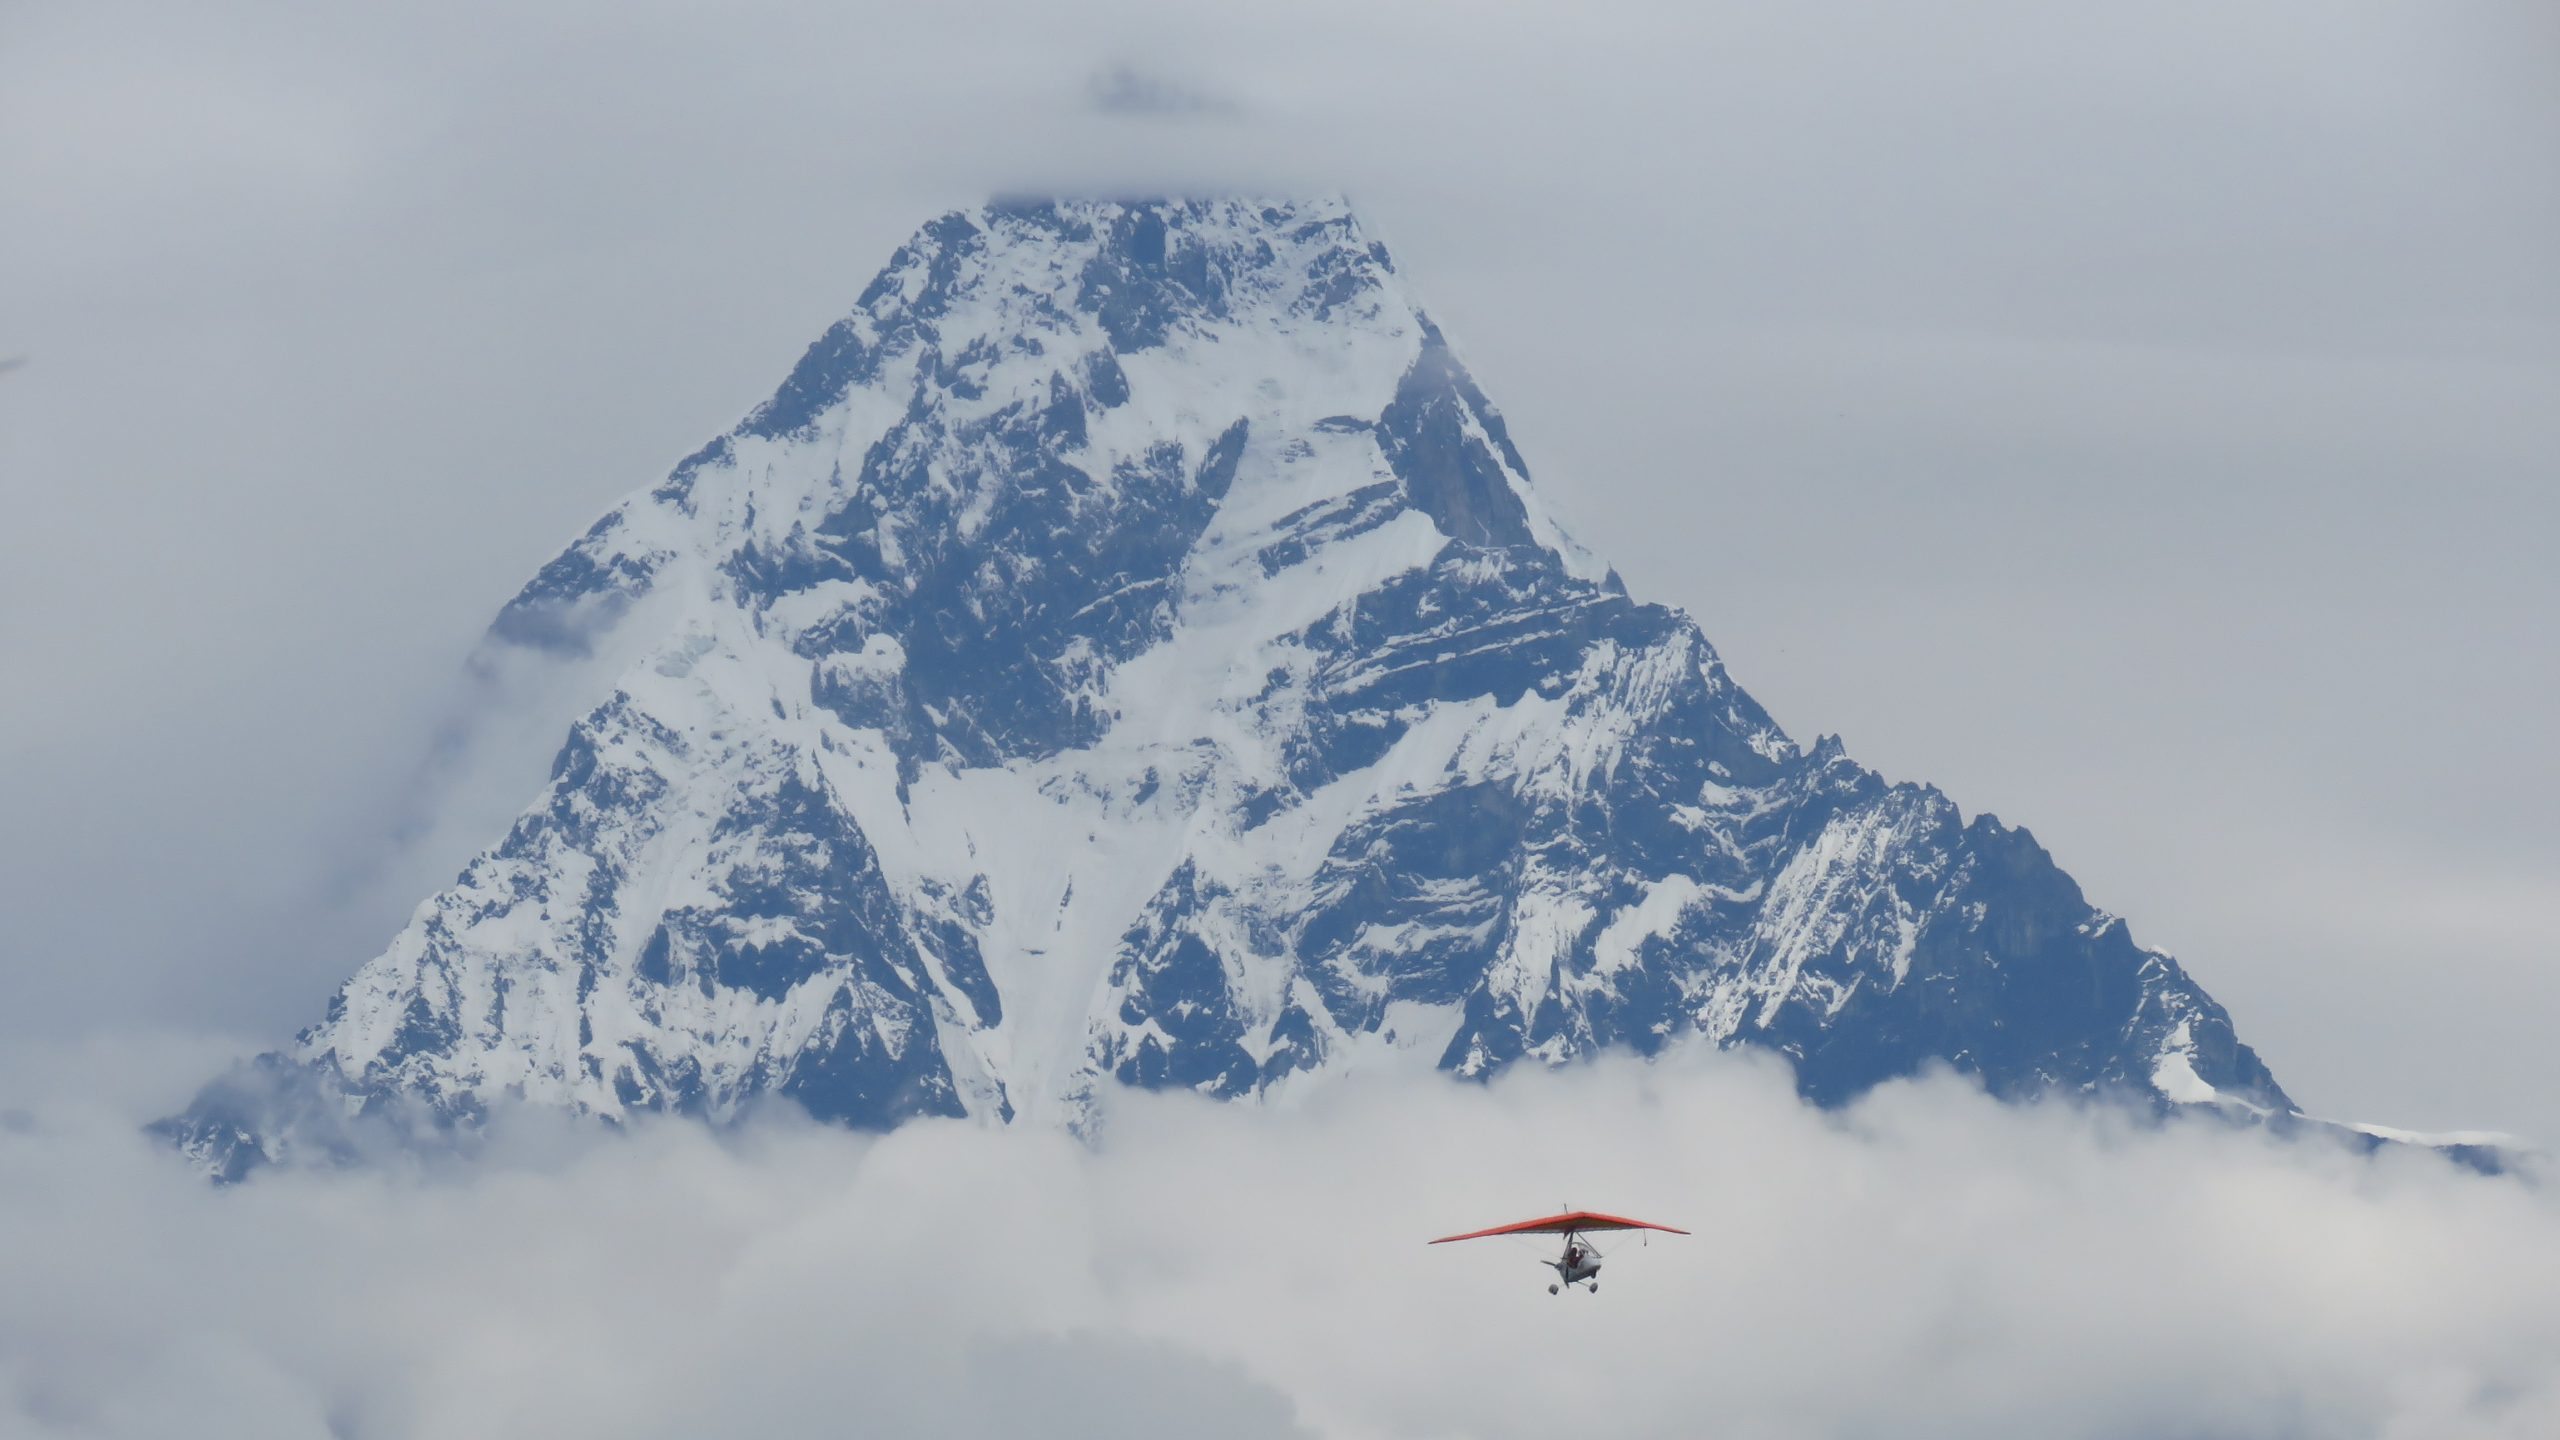 Ultralight aircraft in mountain sight seeing